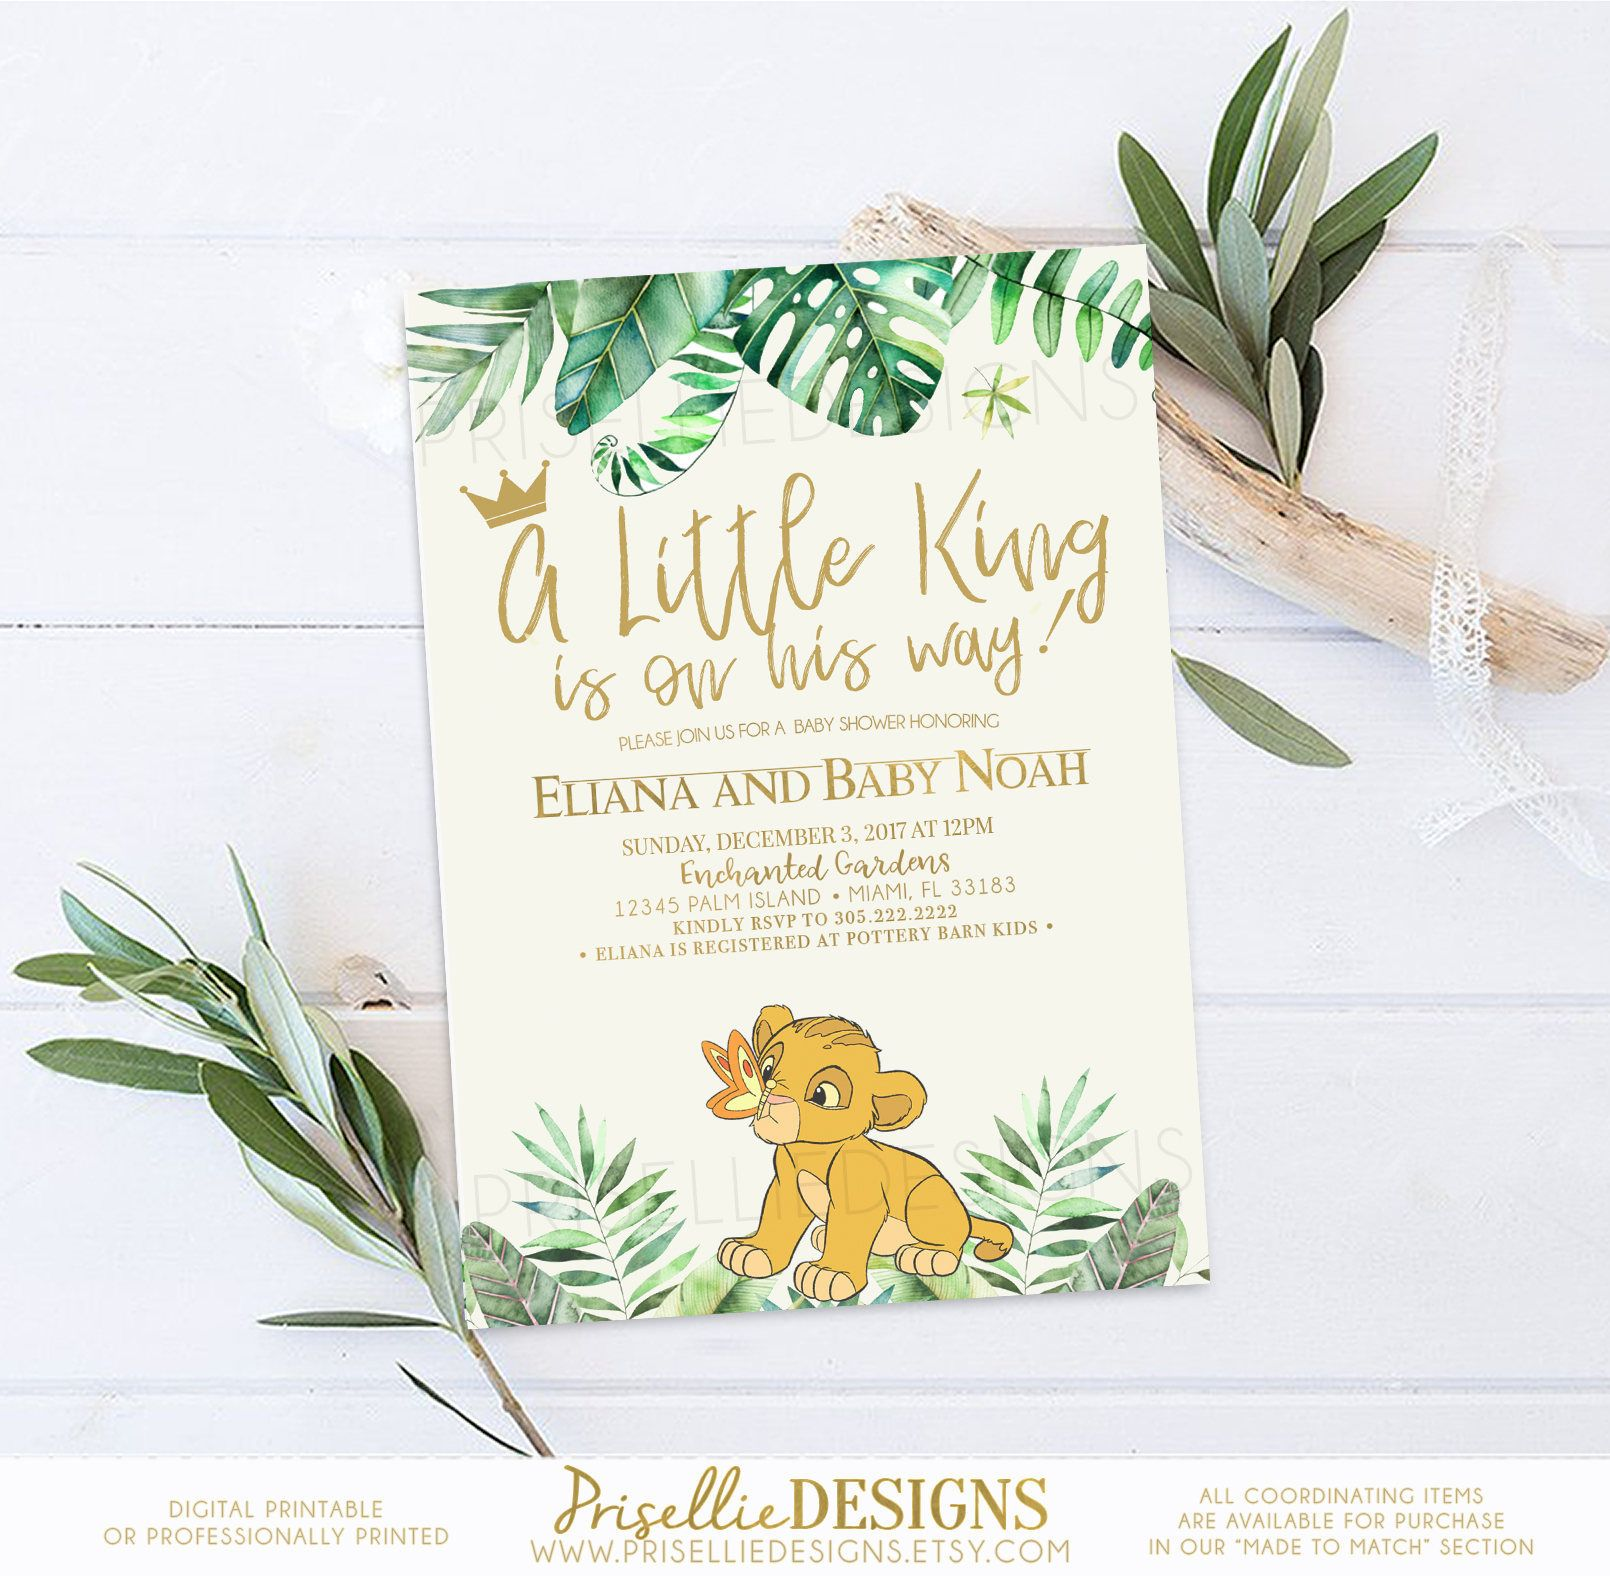 Simba baby shower invitation lion king baby shower invitation the simba baby shower invitation lion king baby shower invitation the lion king baby shower filmwisefo Gallery